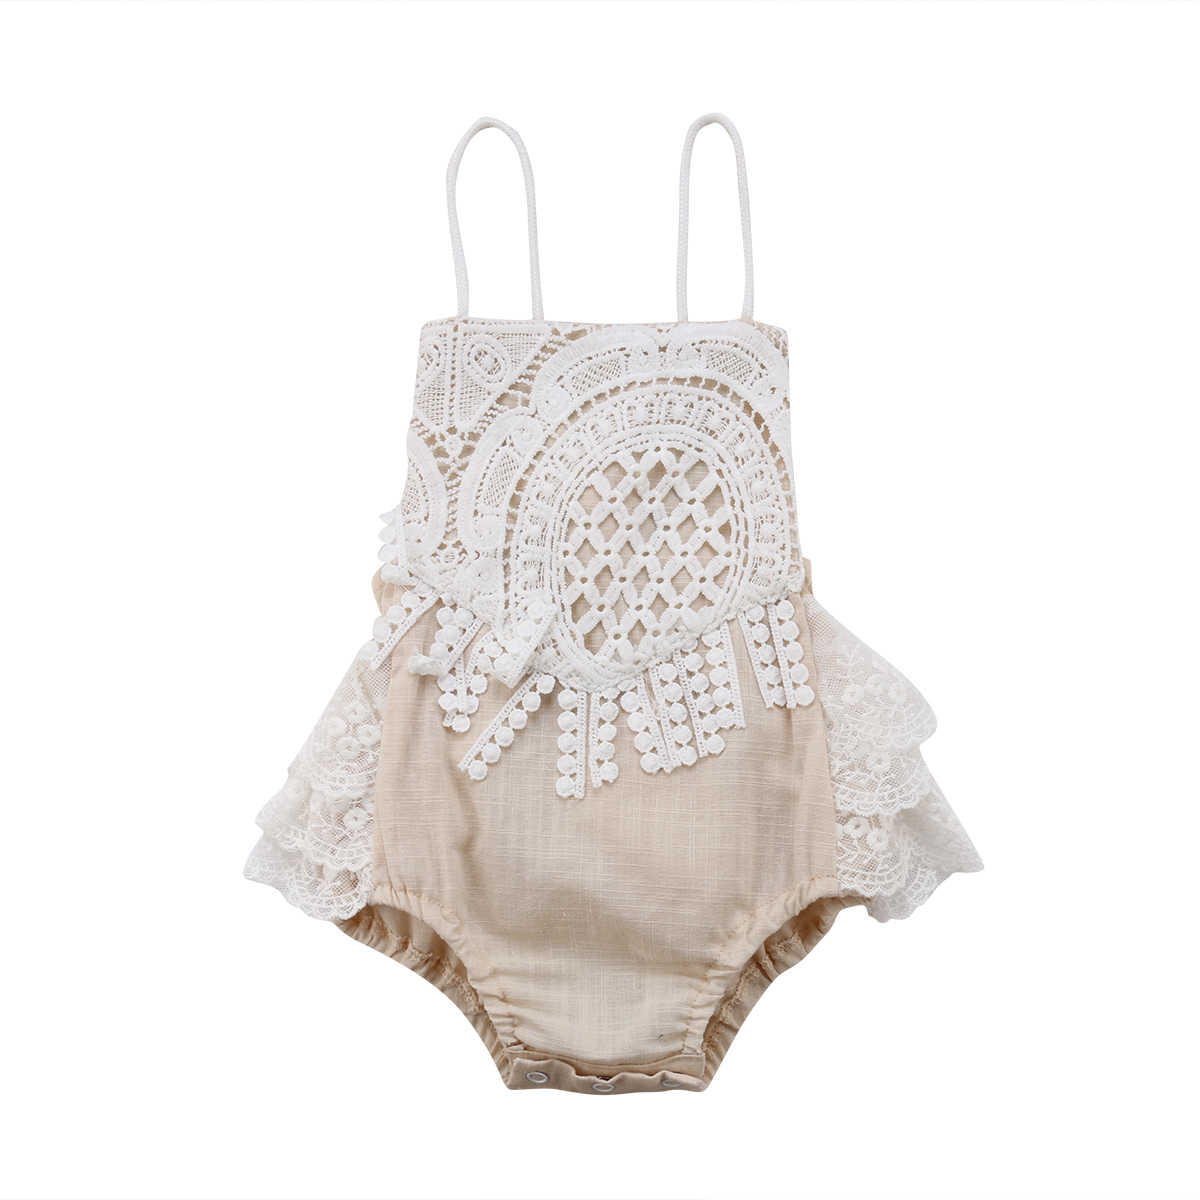 2019 Summer Newborn Bodysuit Baby Girls Lace Jumpsuit Princess Baby Kids Outfits Clothes arrival Children Clothing